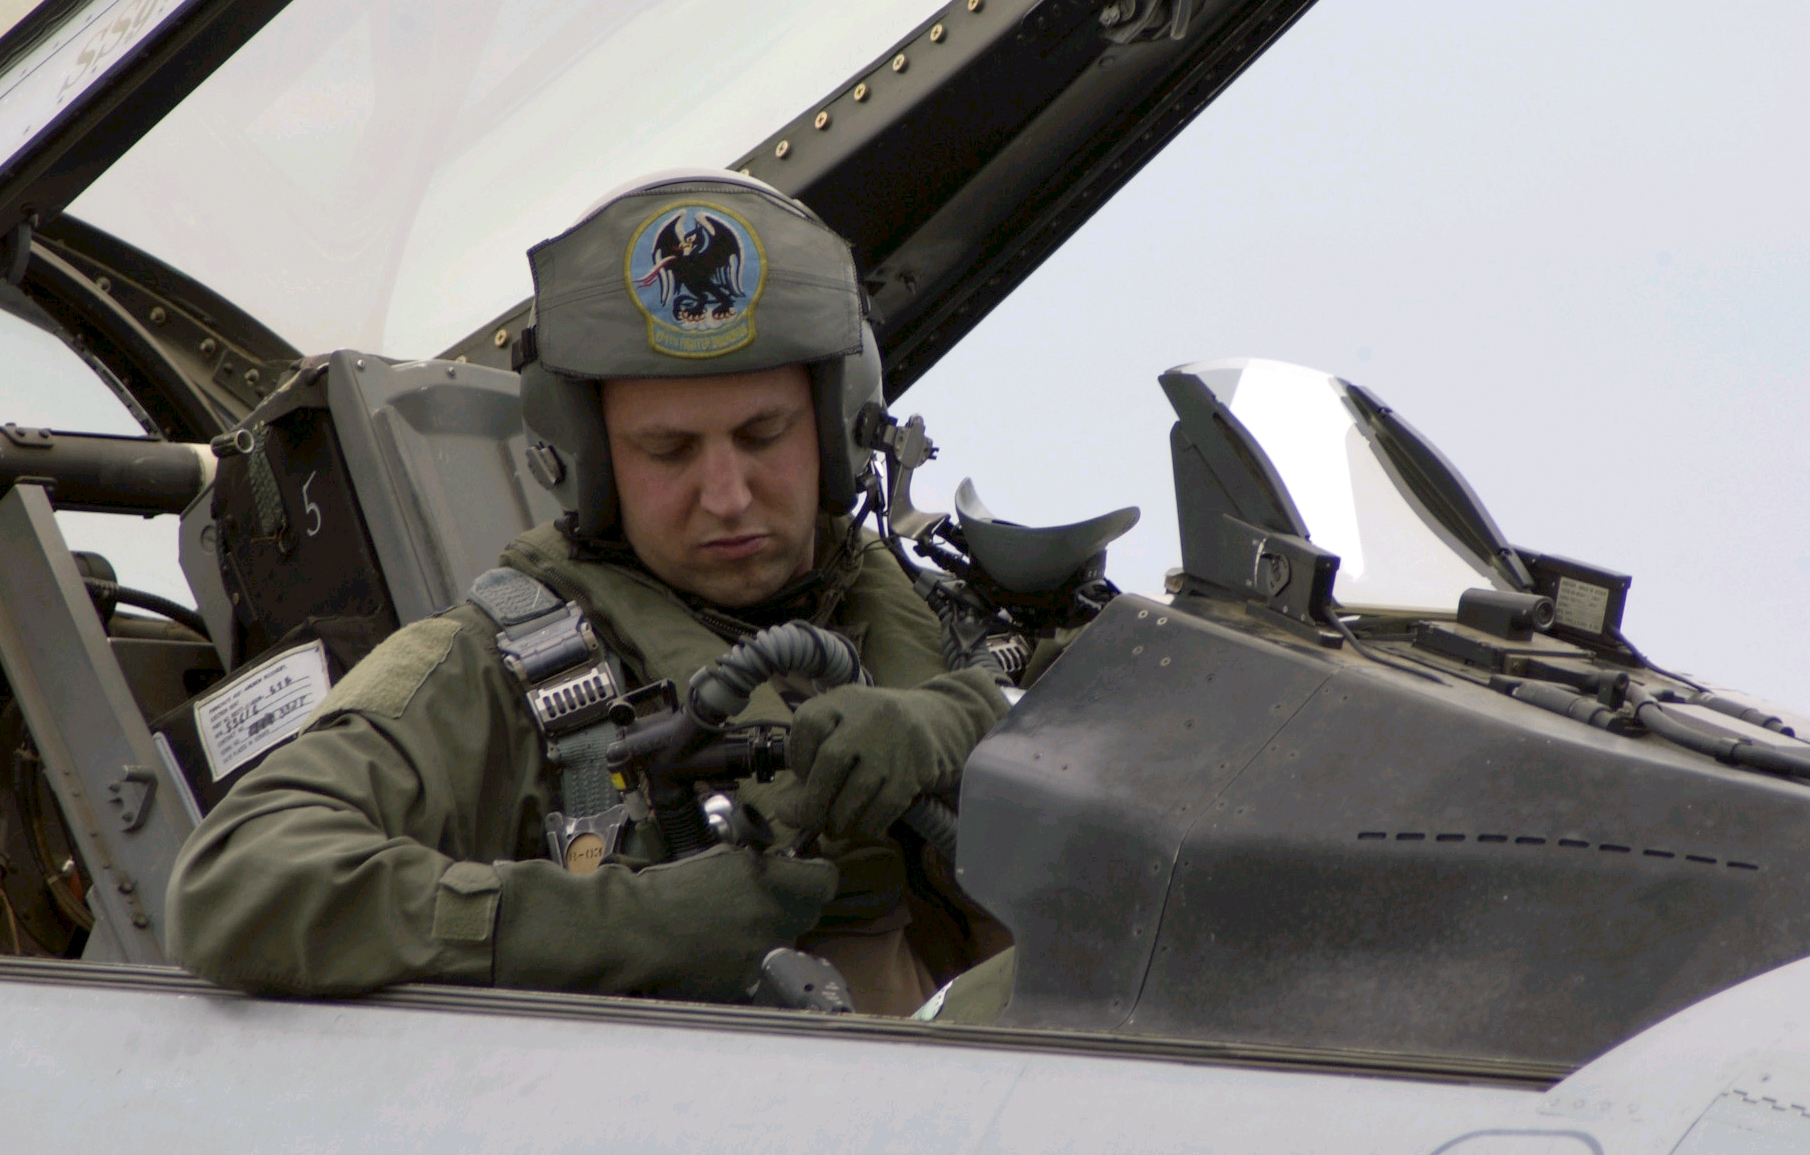 Then-Capt. Seth Nehring prepares himself for a mission in an F-16 Fighting Falcon during operation Cooperative Cope Thunder at Eielson Air Force Base, Alaska, in this July 2004 photo. Nehring was killed this week along with a Ukrainian pilot when an Su-27 aircraft crashed during an exercise in Ukraine. (Senior Master Sgt. Chris Drudge/Air Force)